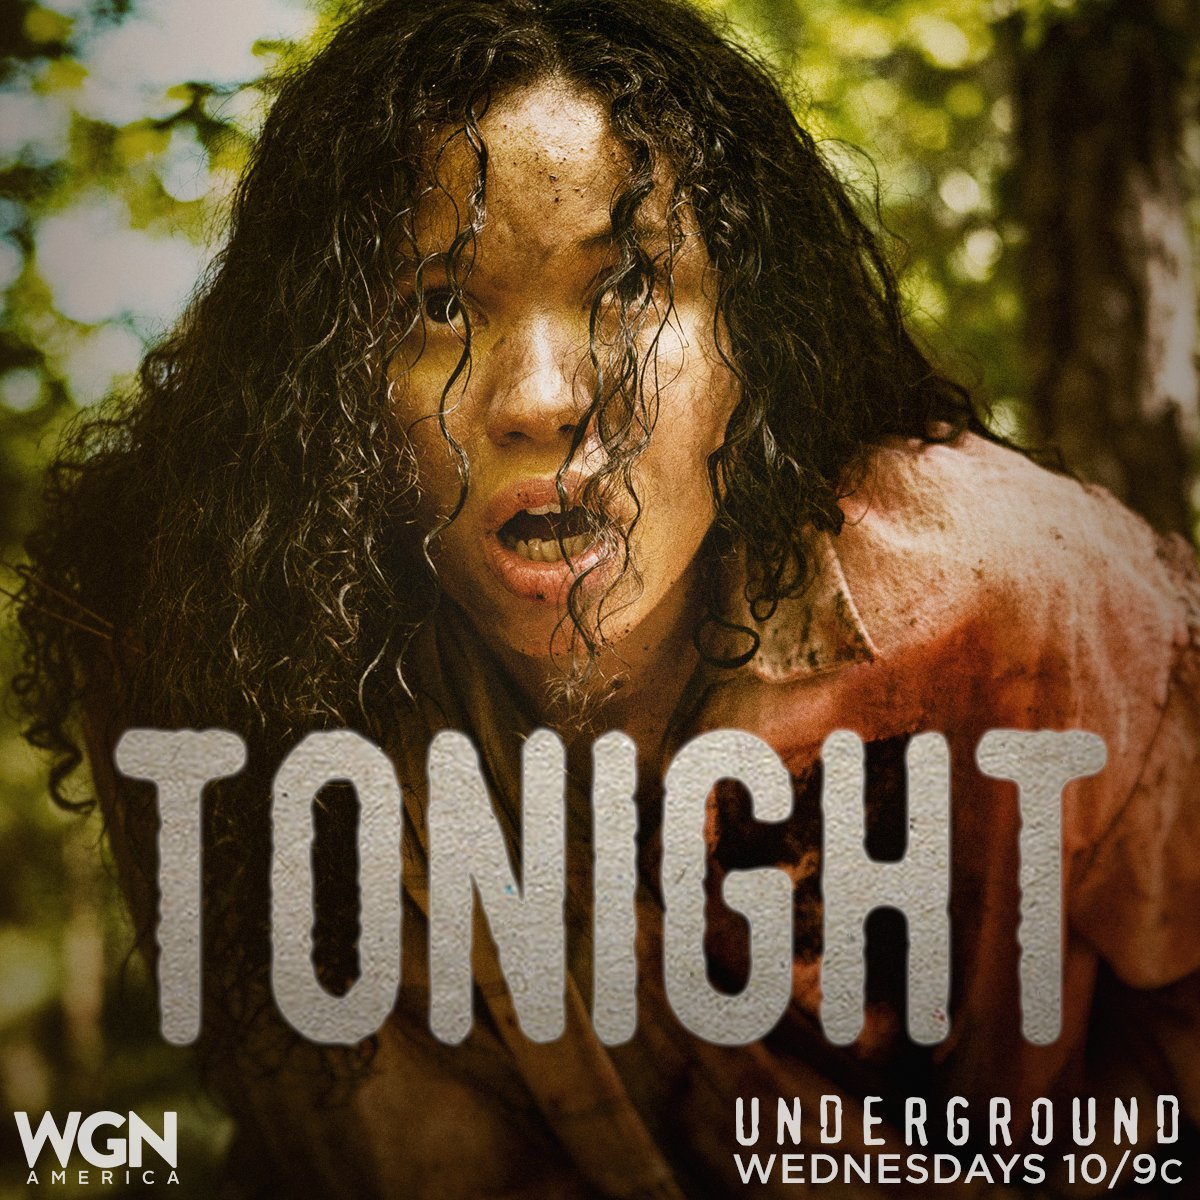 The battle for freedom continues! Don't miss an ALL NEW #UndergroundWG...